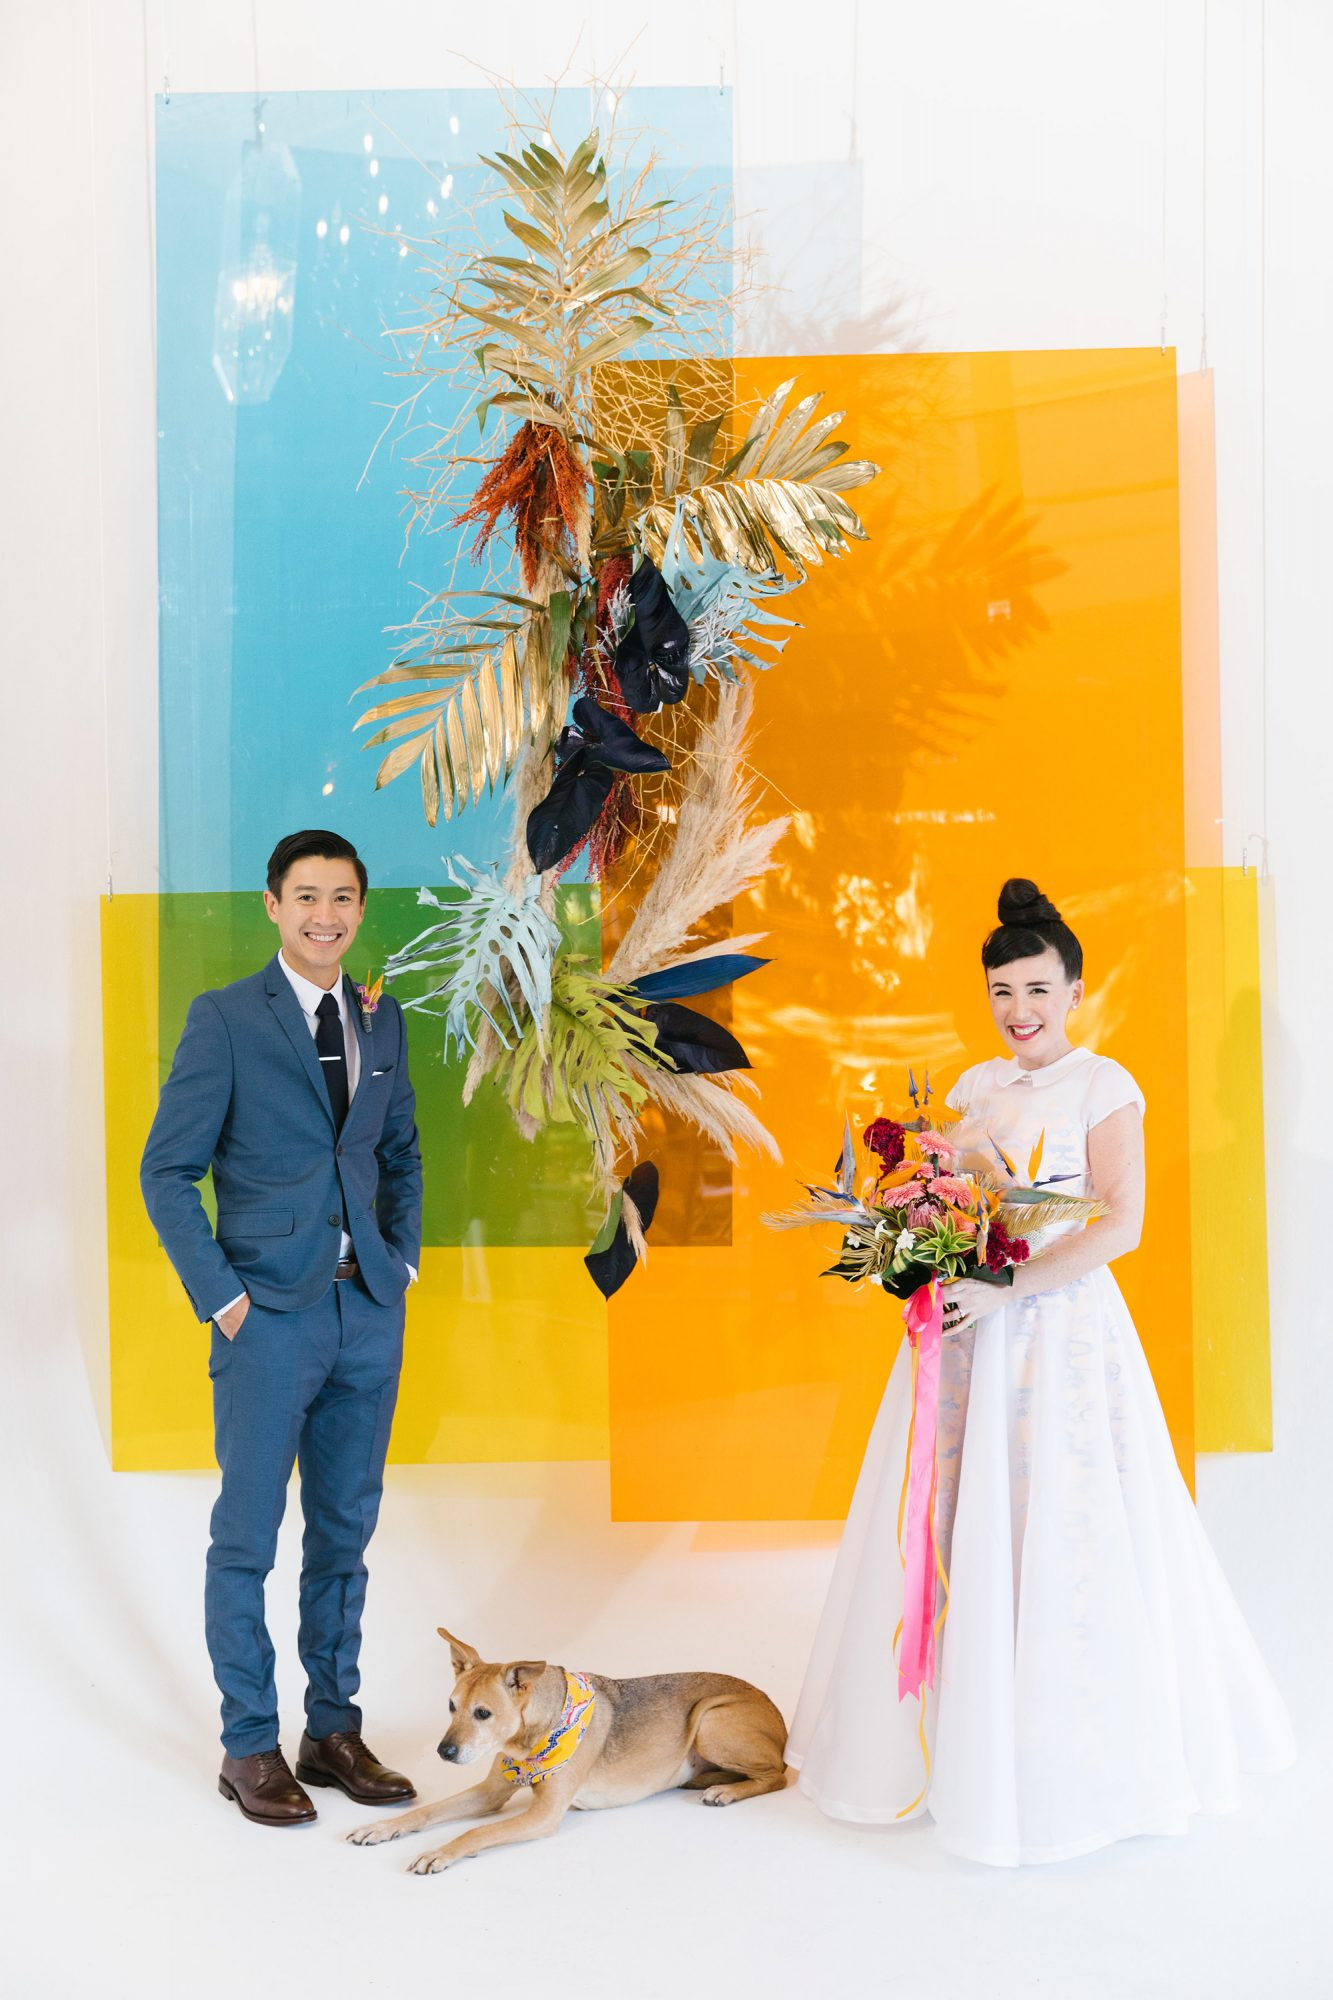 tashina huy colorful wedding couple dog backdrop